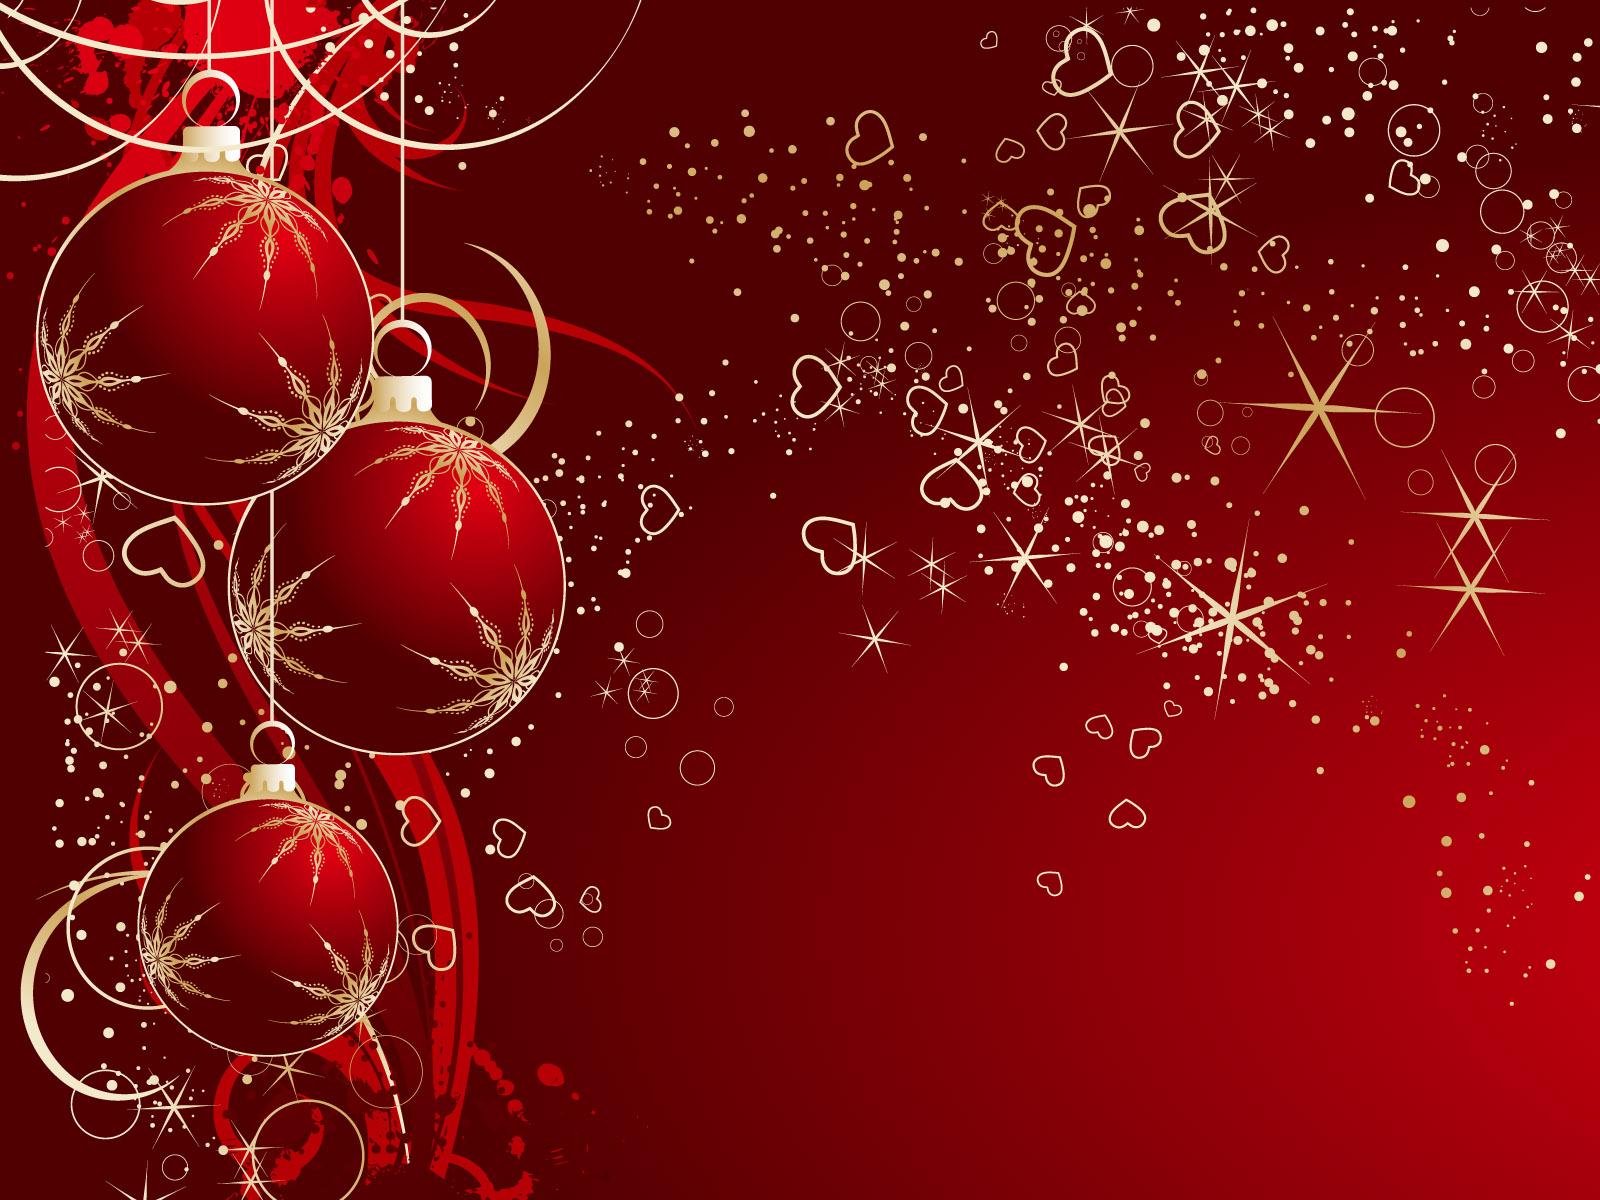 Free Christmas Backgrounds Free For Desktop